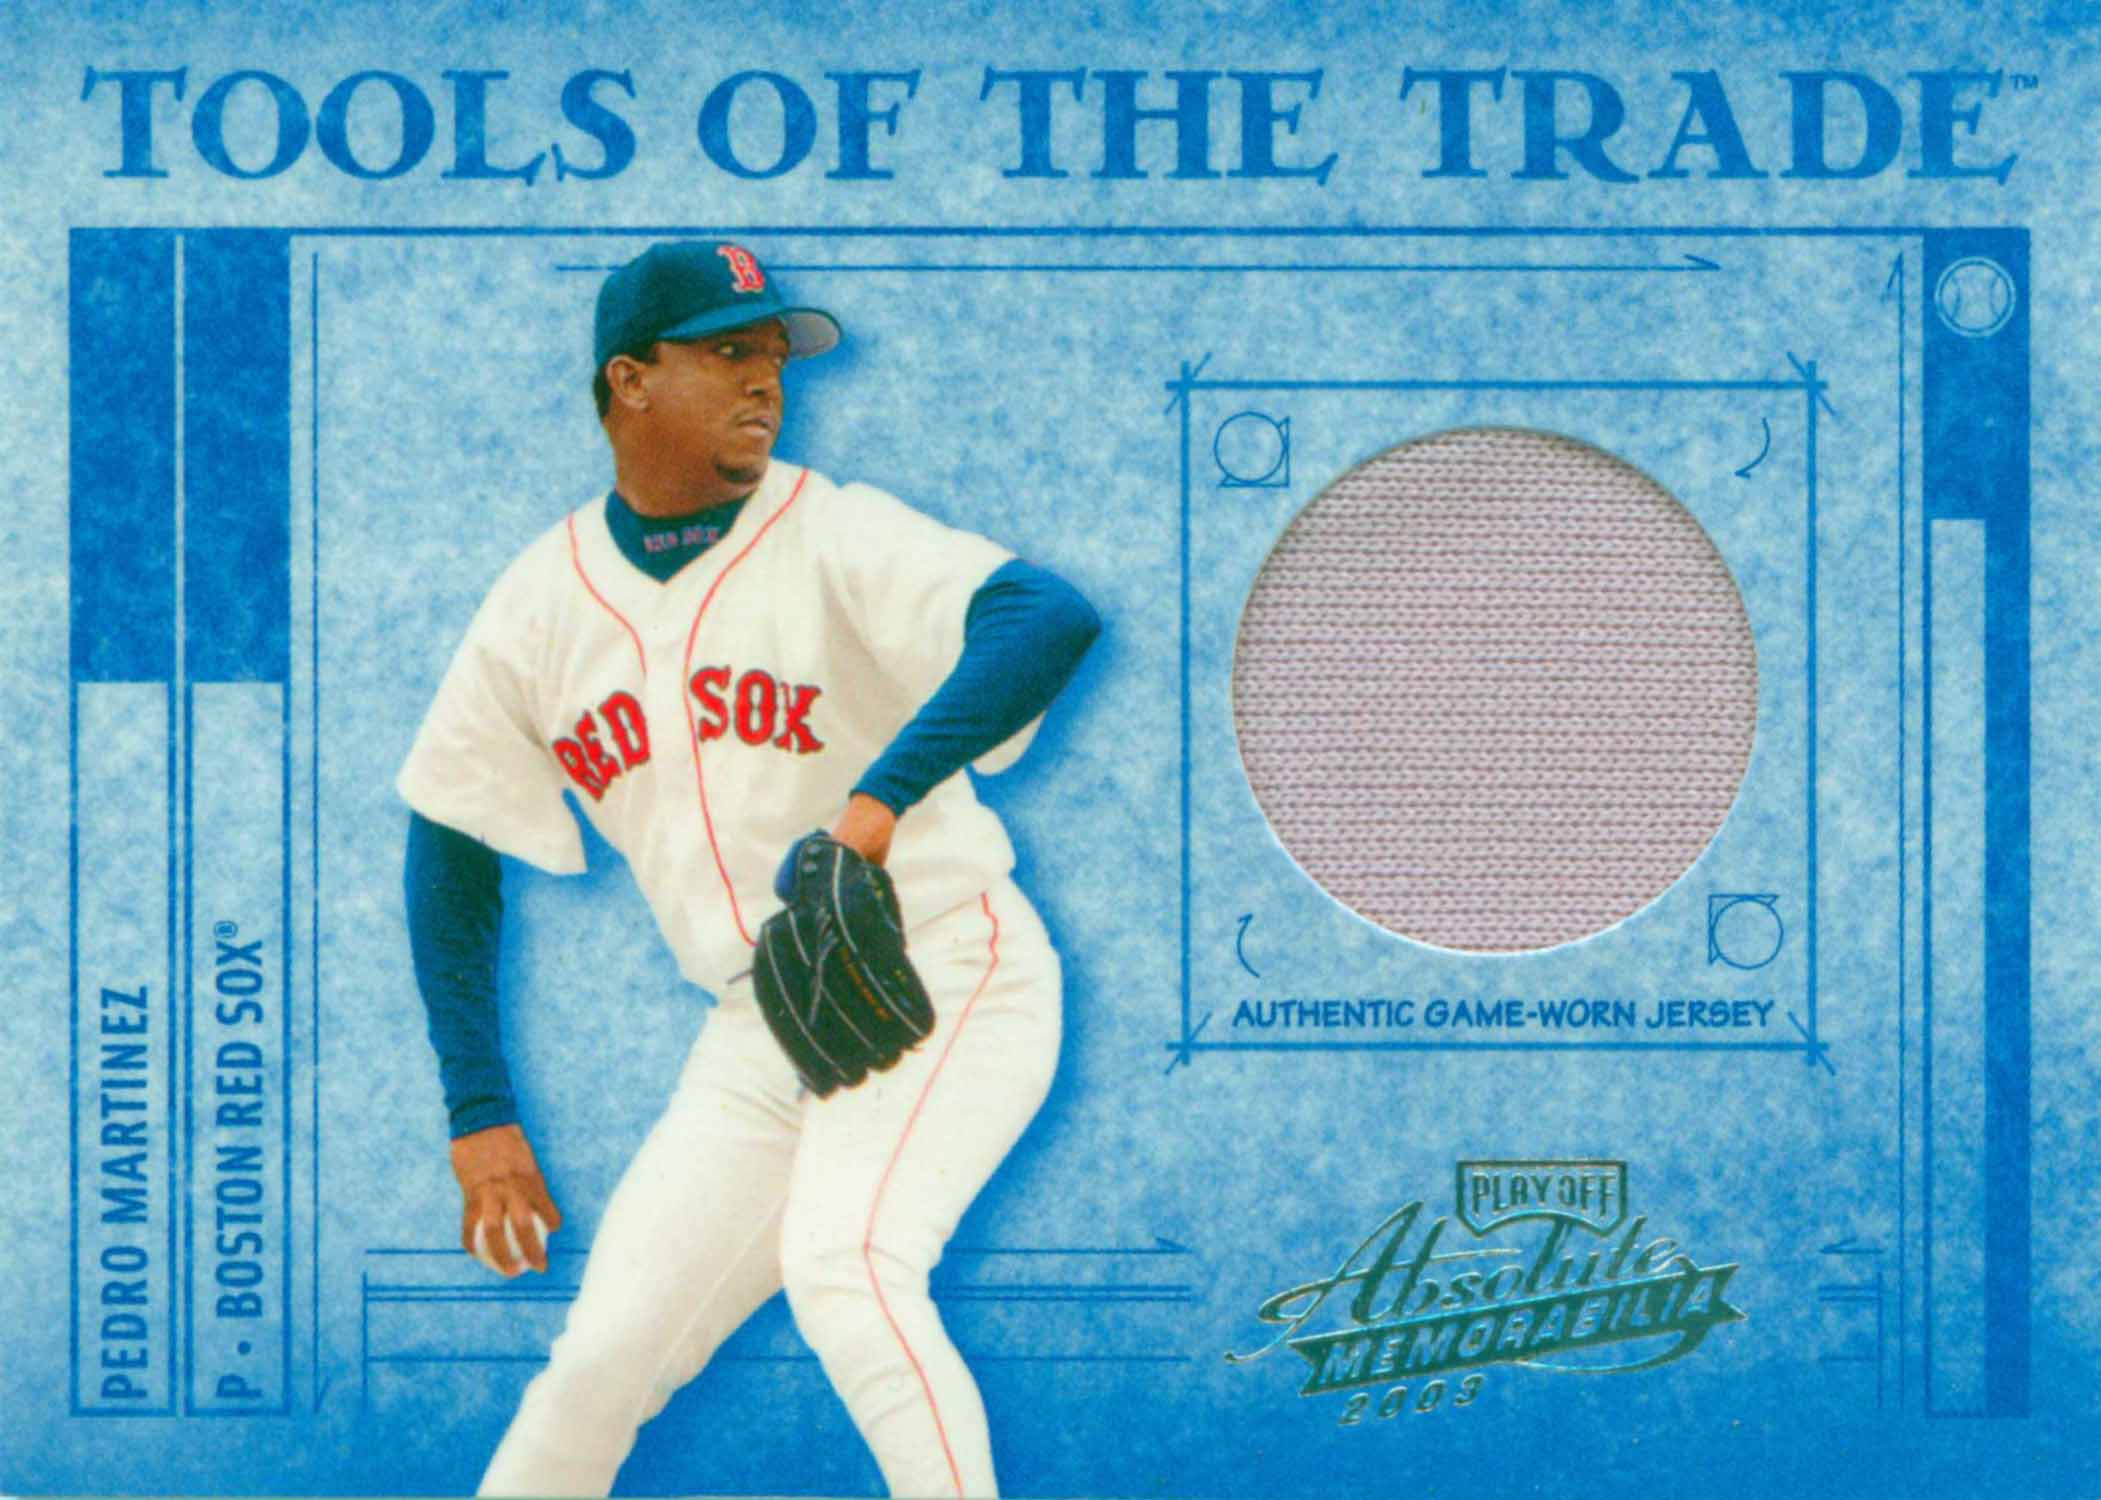 2003 Absolute Memorabilia Tools of the Trade Materials Jersey